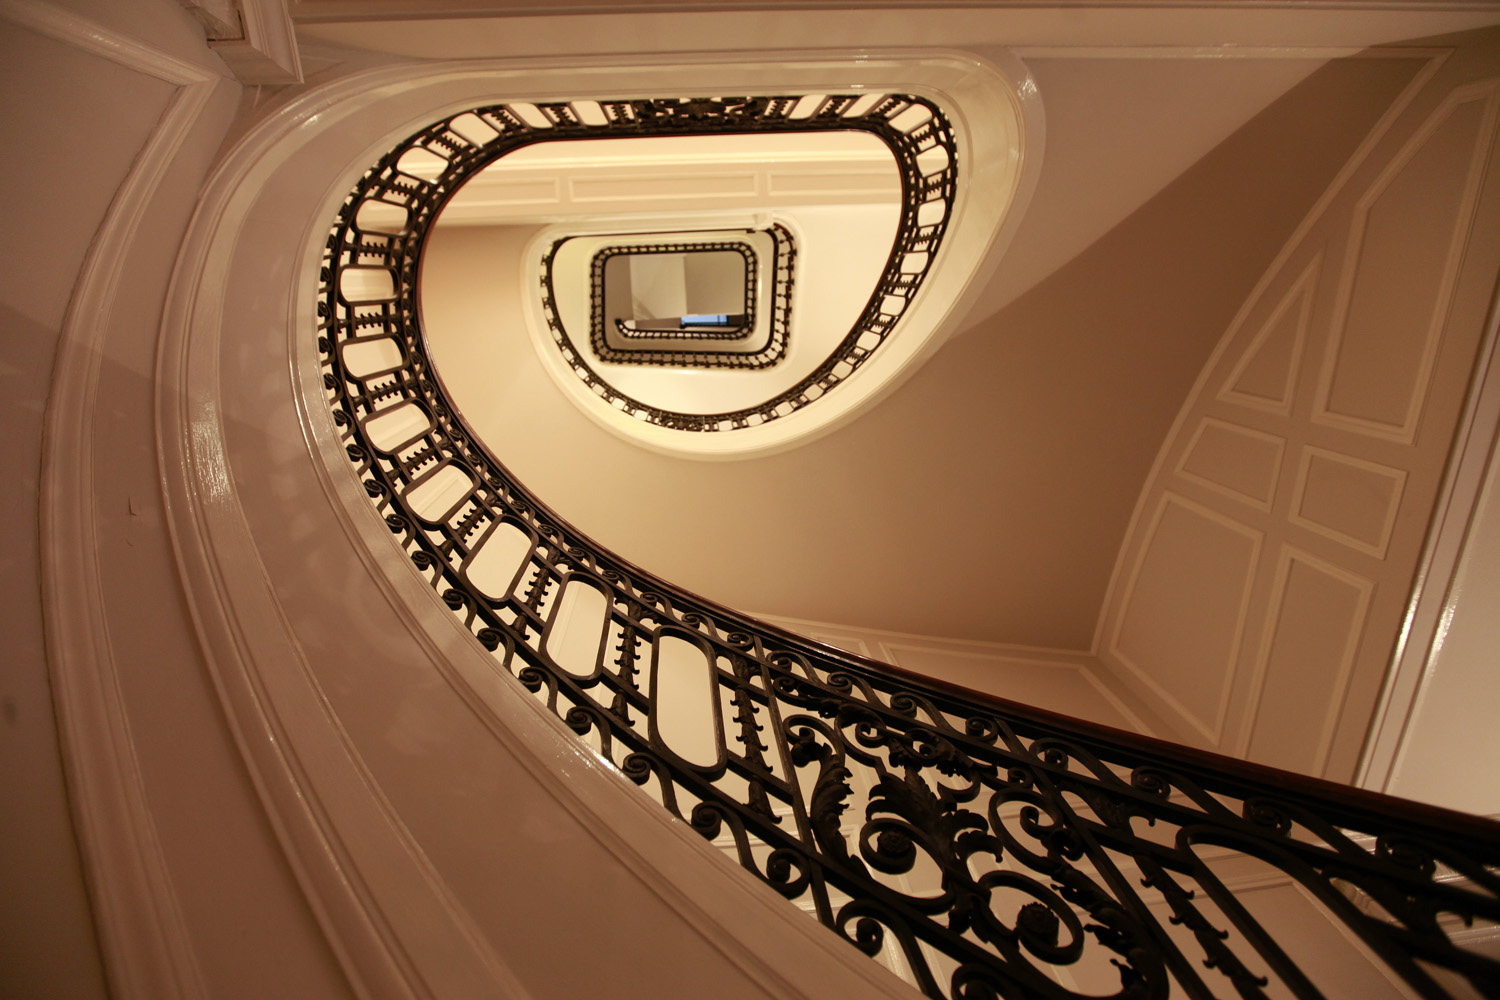 Image of the spiral staircase in 1014 Space taken from the bottom level looking up.